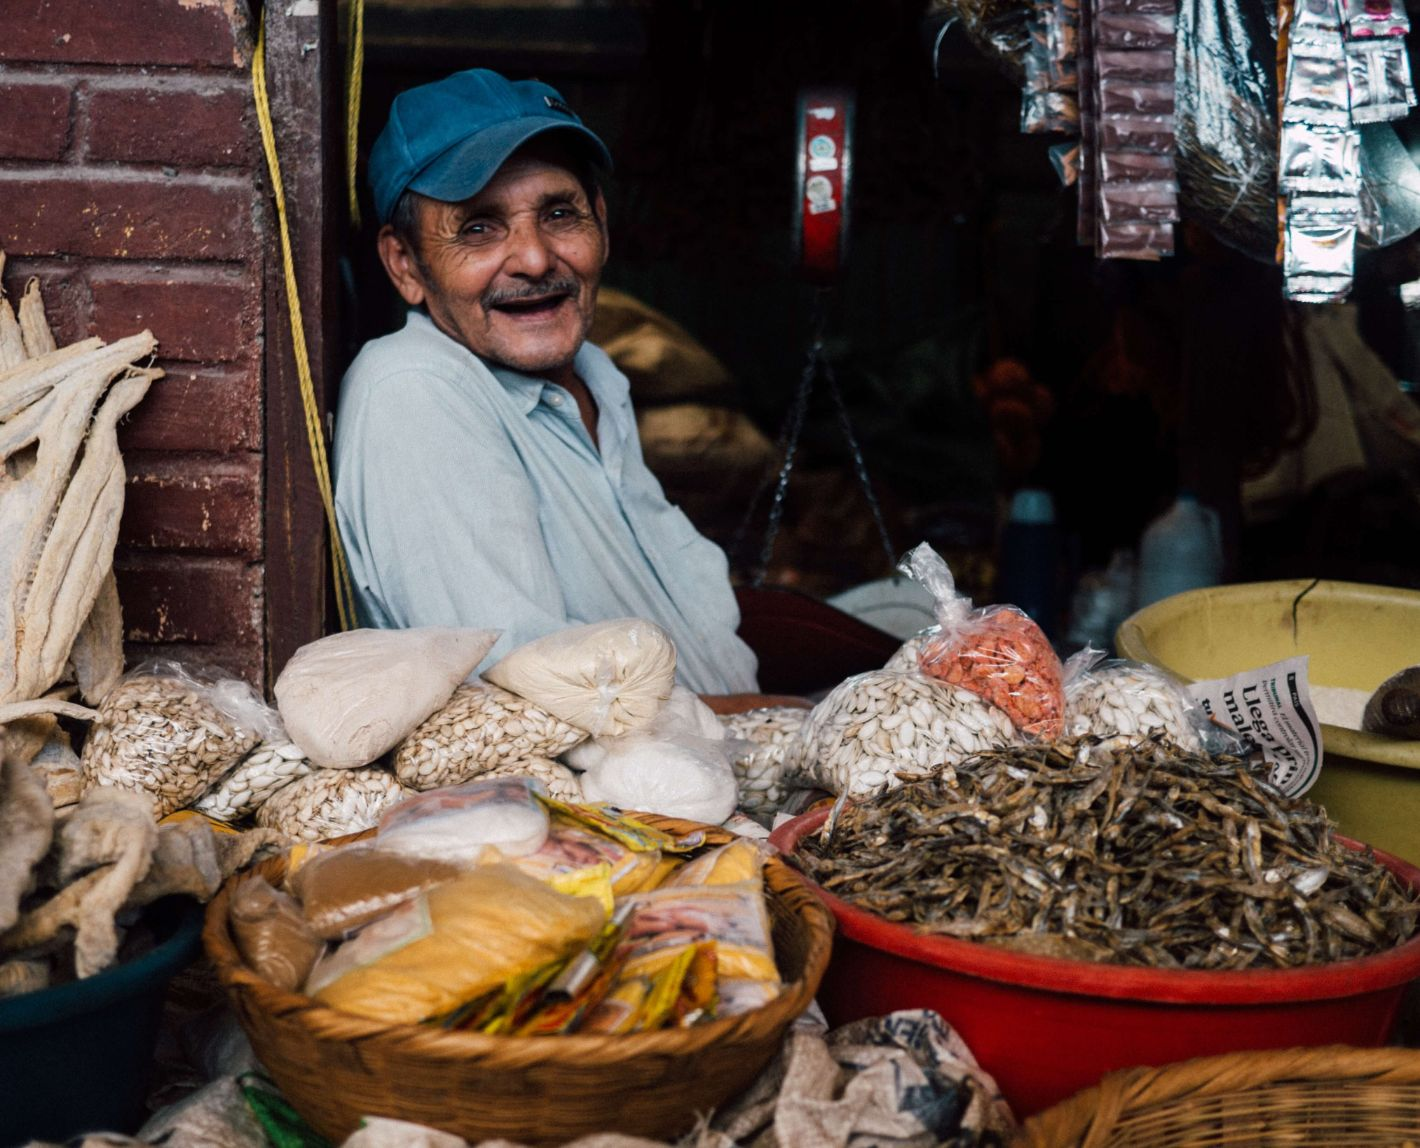 man selling food at a market in Honduras